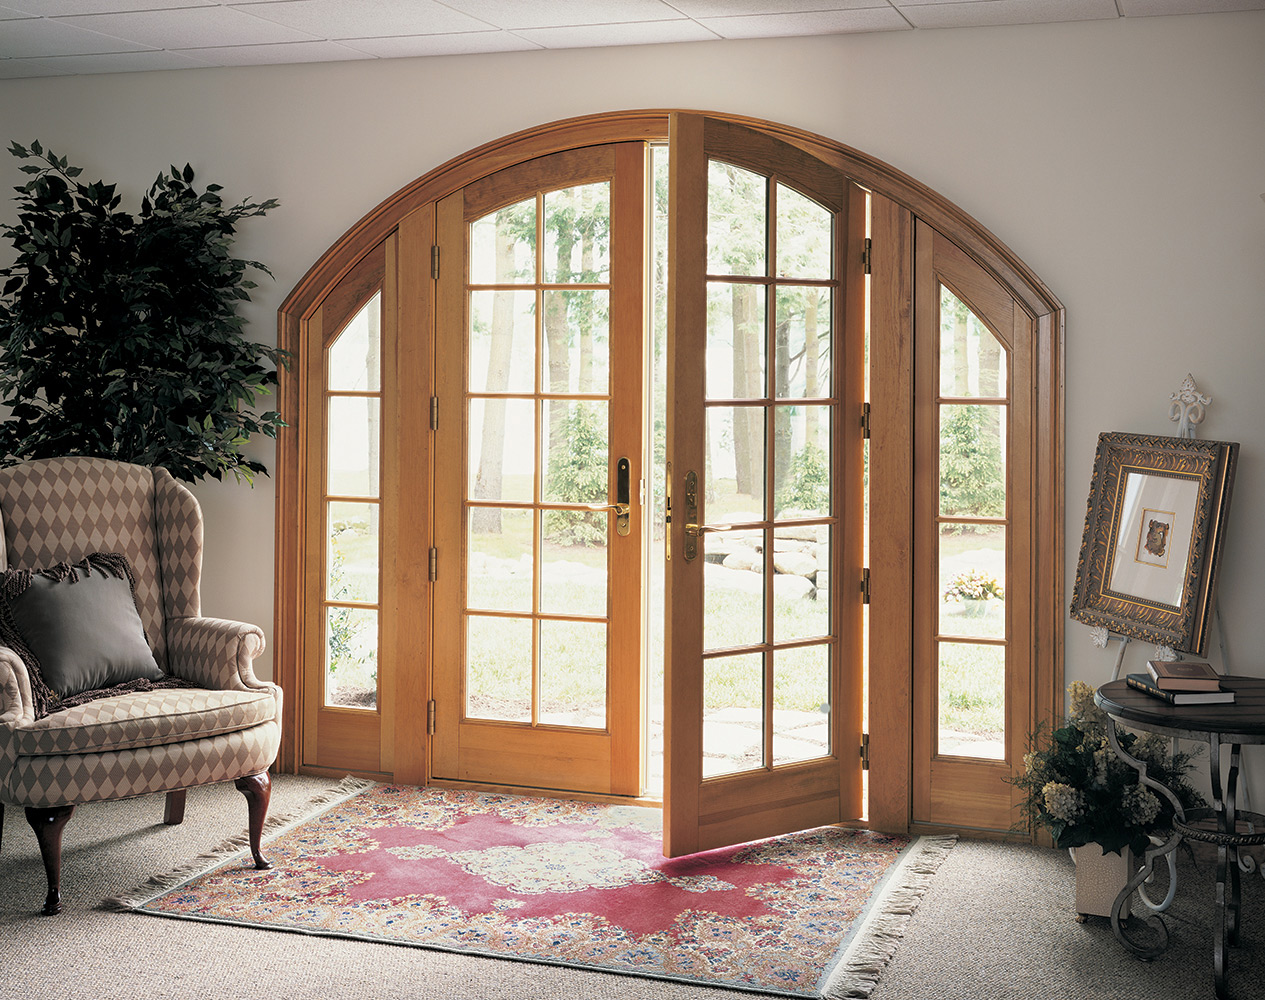 Marvin replacement hinged patio doors with arched top